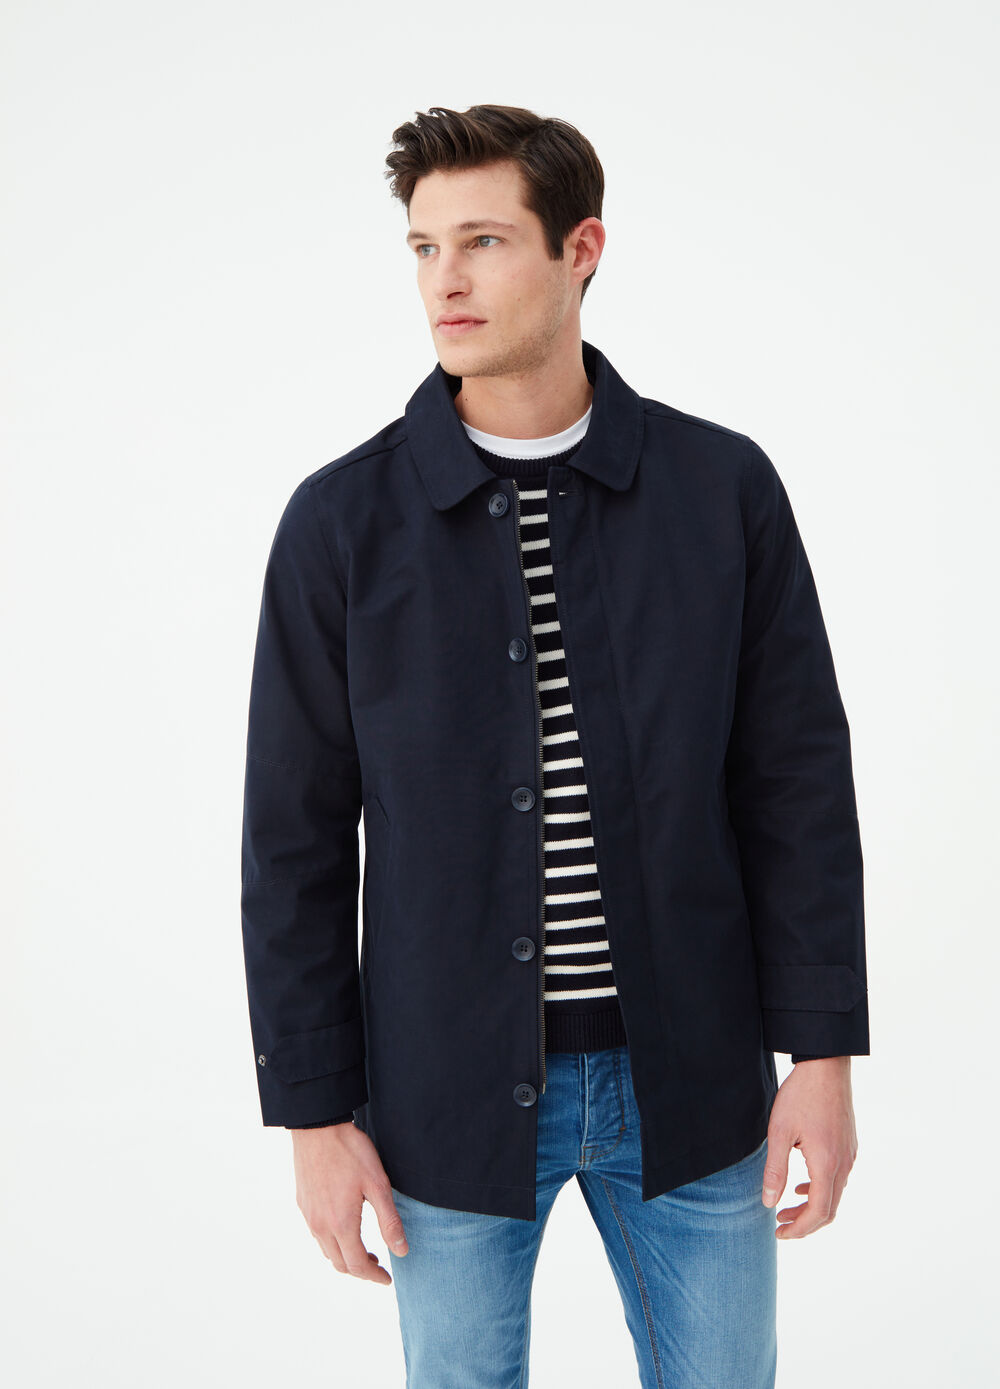 Coat with bluff collar and pockets